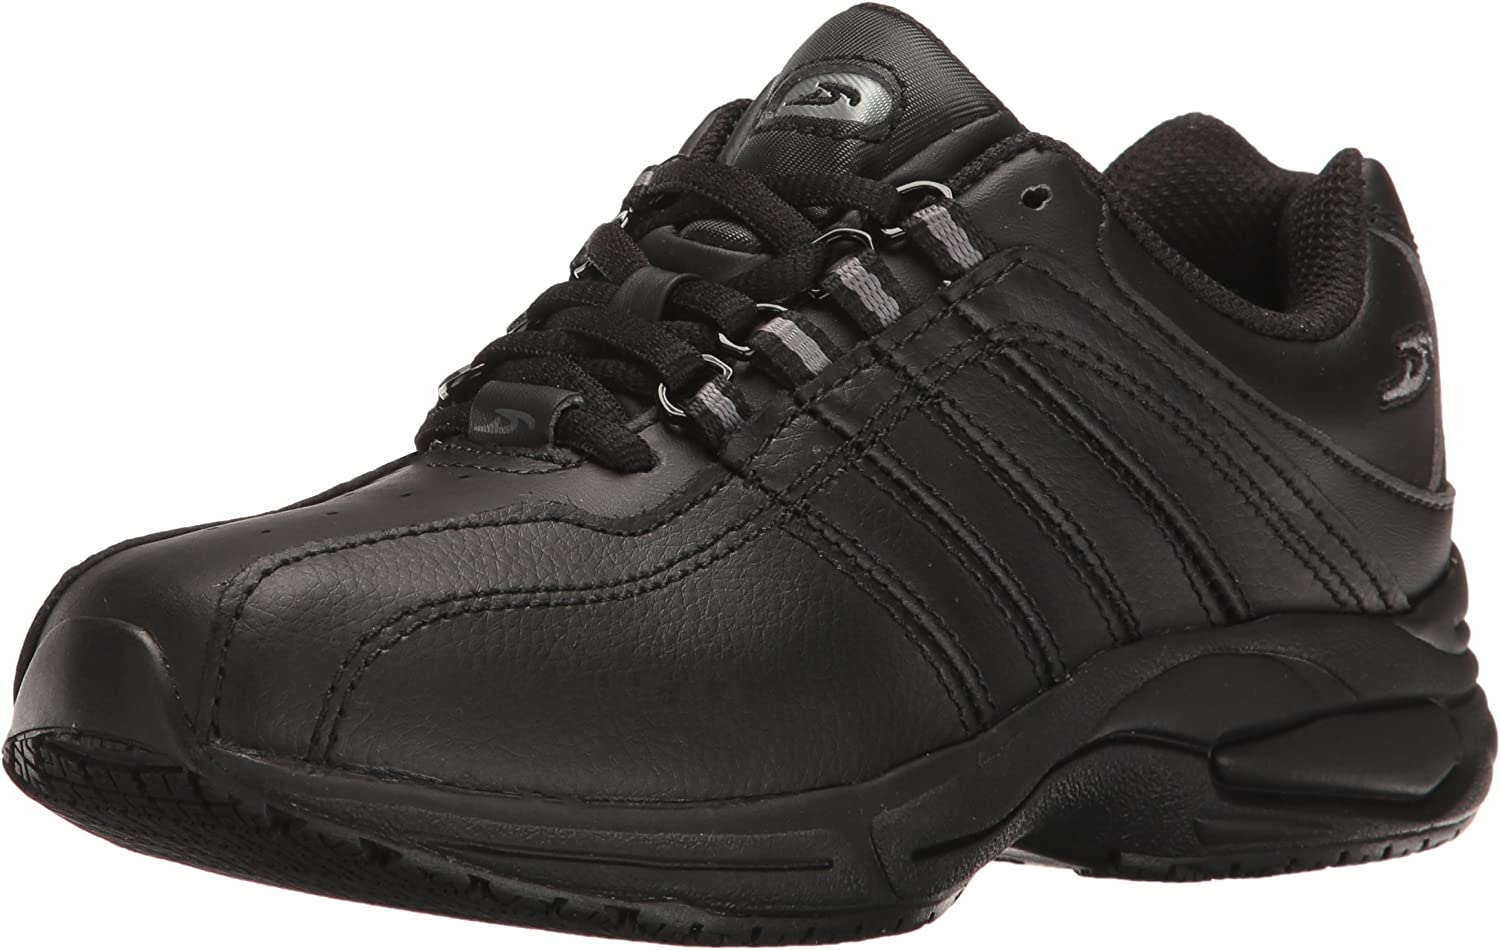 Dr. Scholl's Shoes Women's Kimberly Work Shoe: Shoes